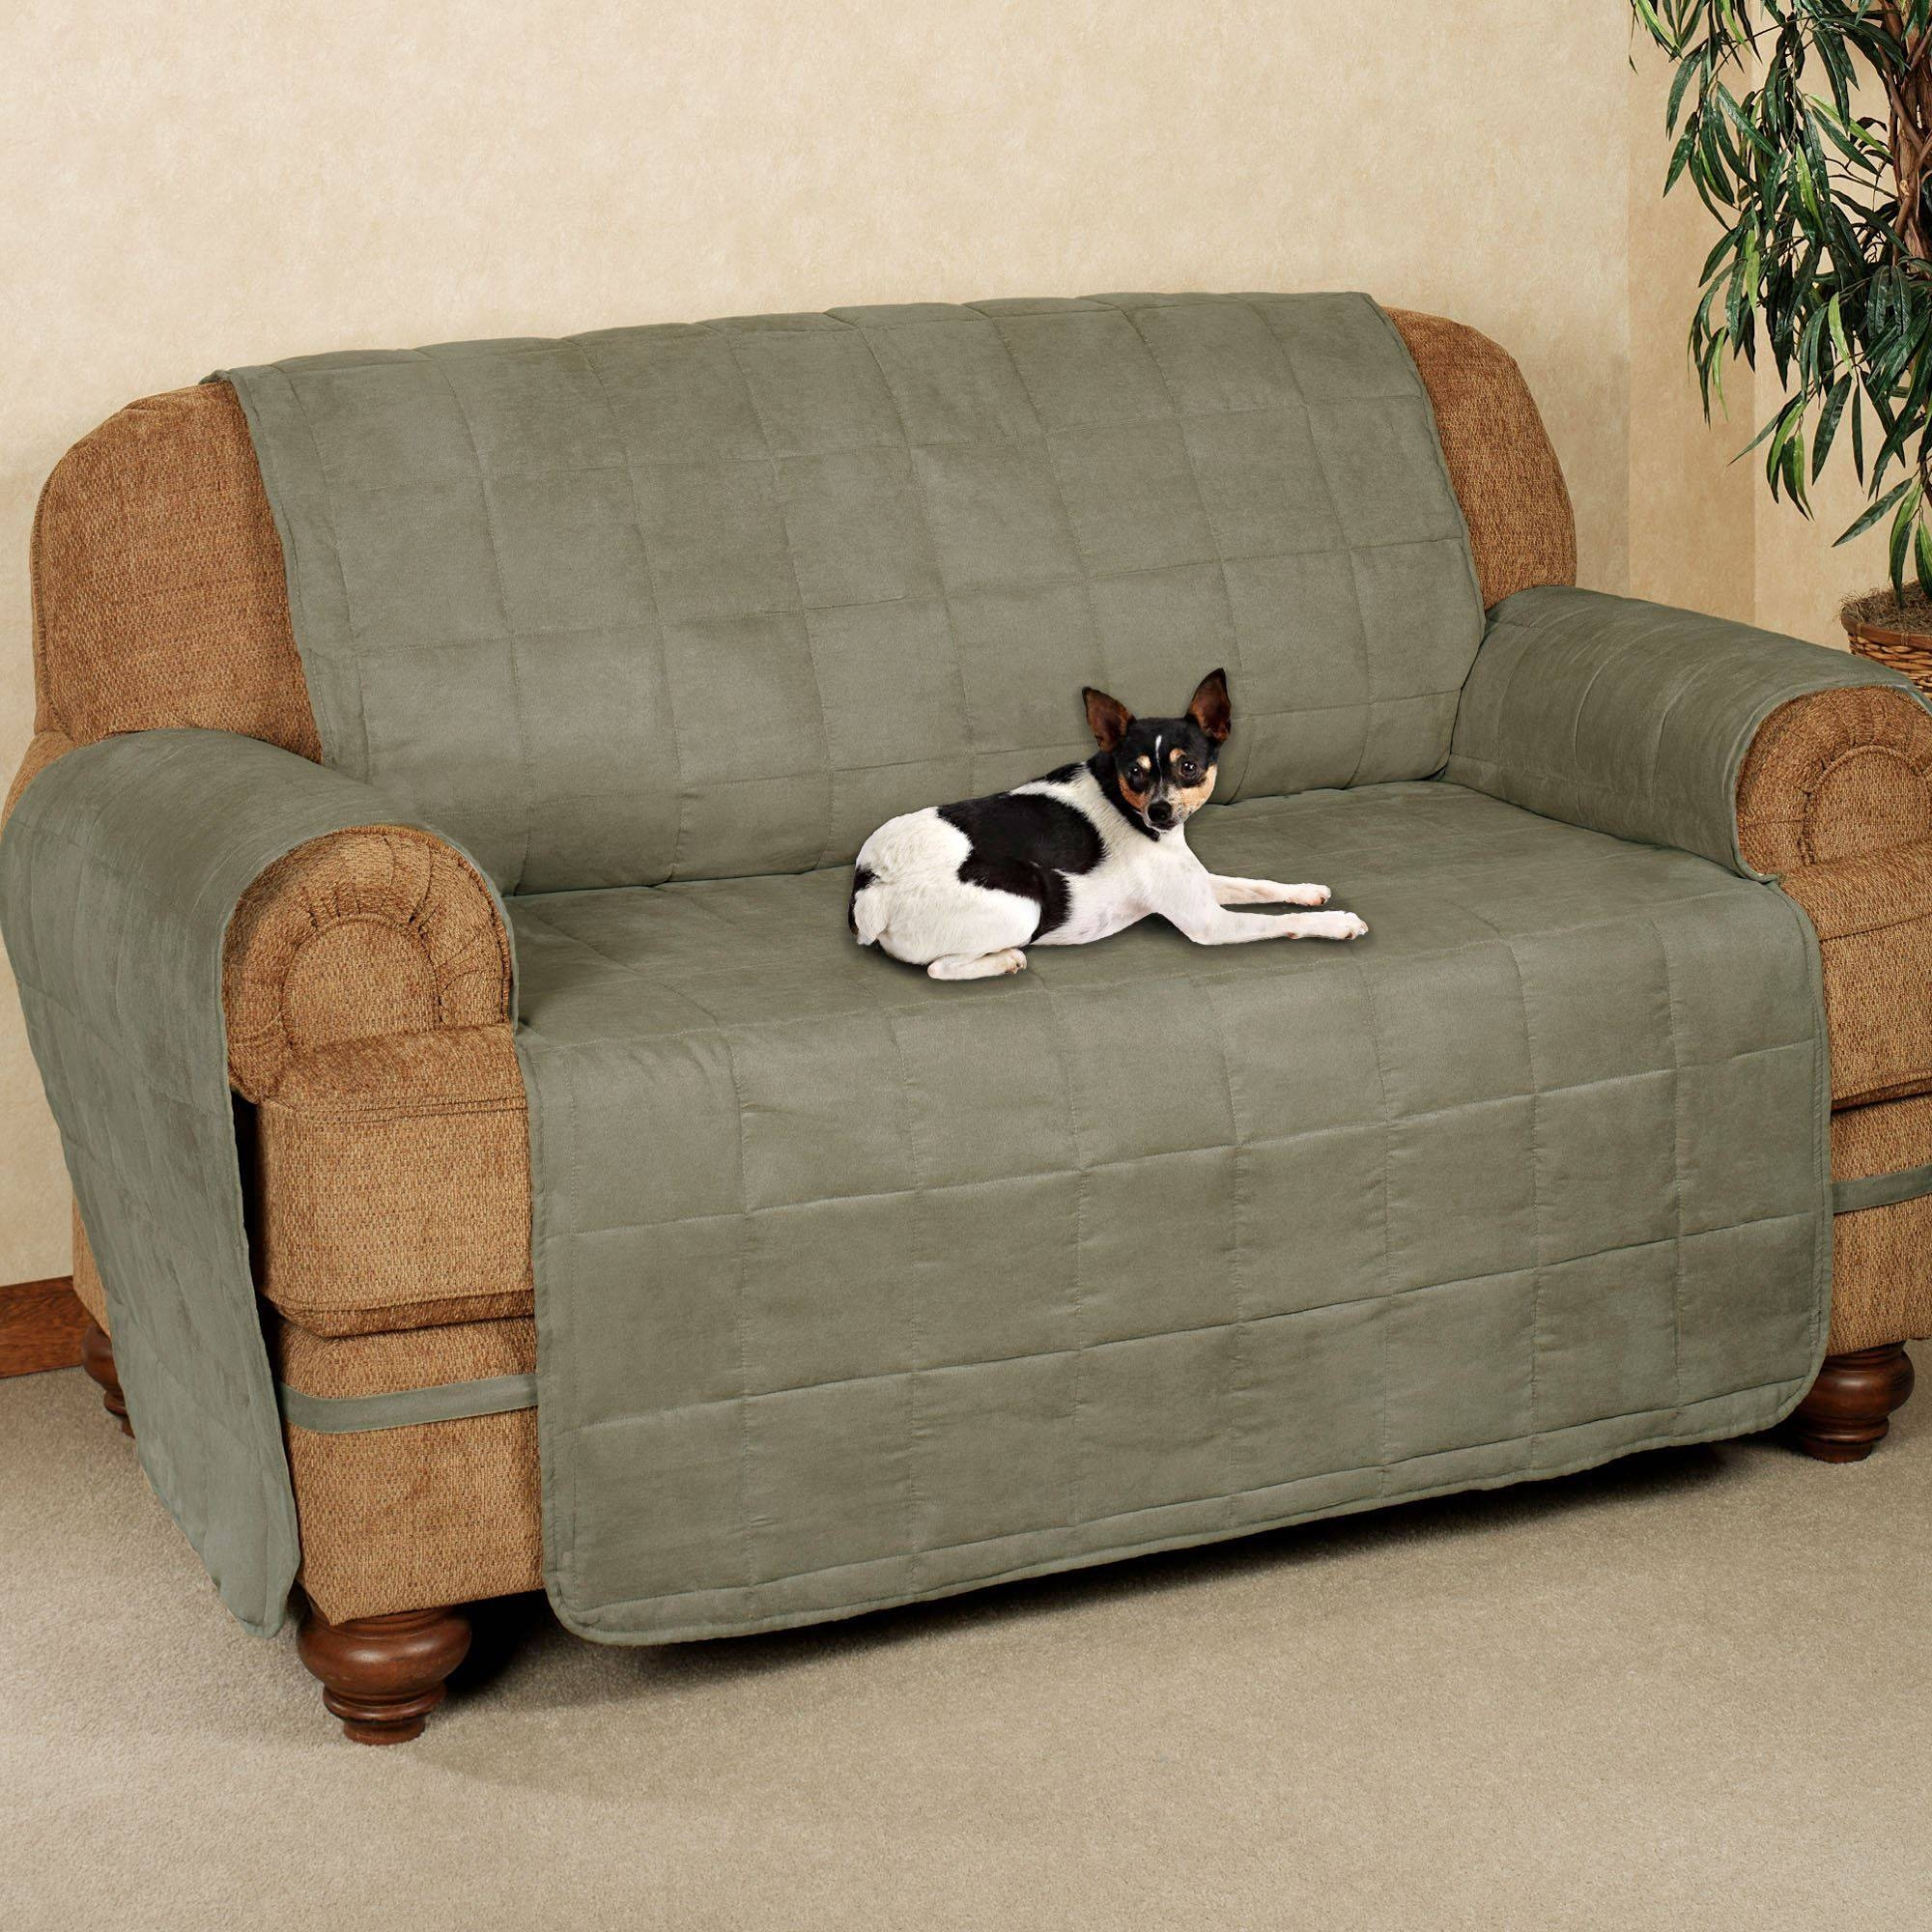 Ultimate Pet Furniture Protectors With Straps Throughout Cat Proof Sofas (View 15 of 15)